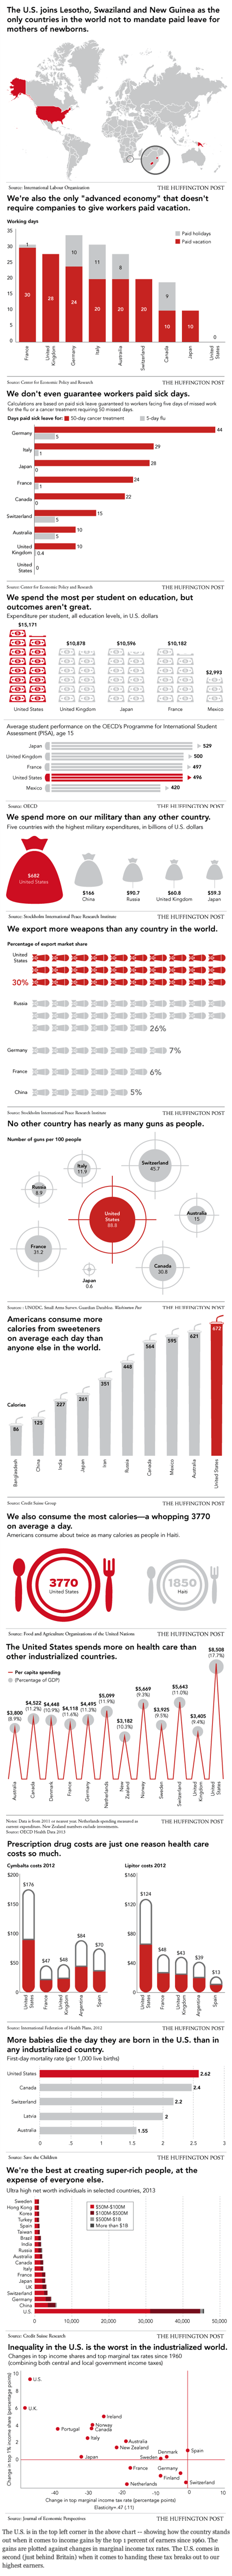 america around the world infographic huffington post - 7900901376